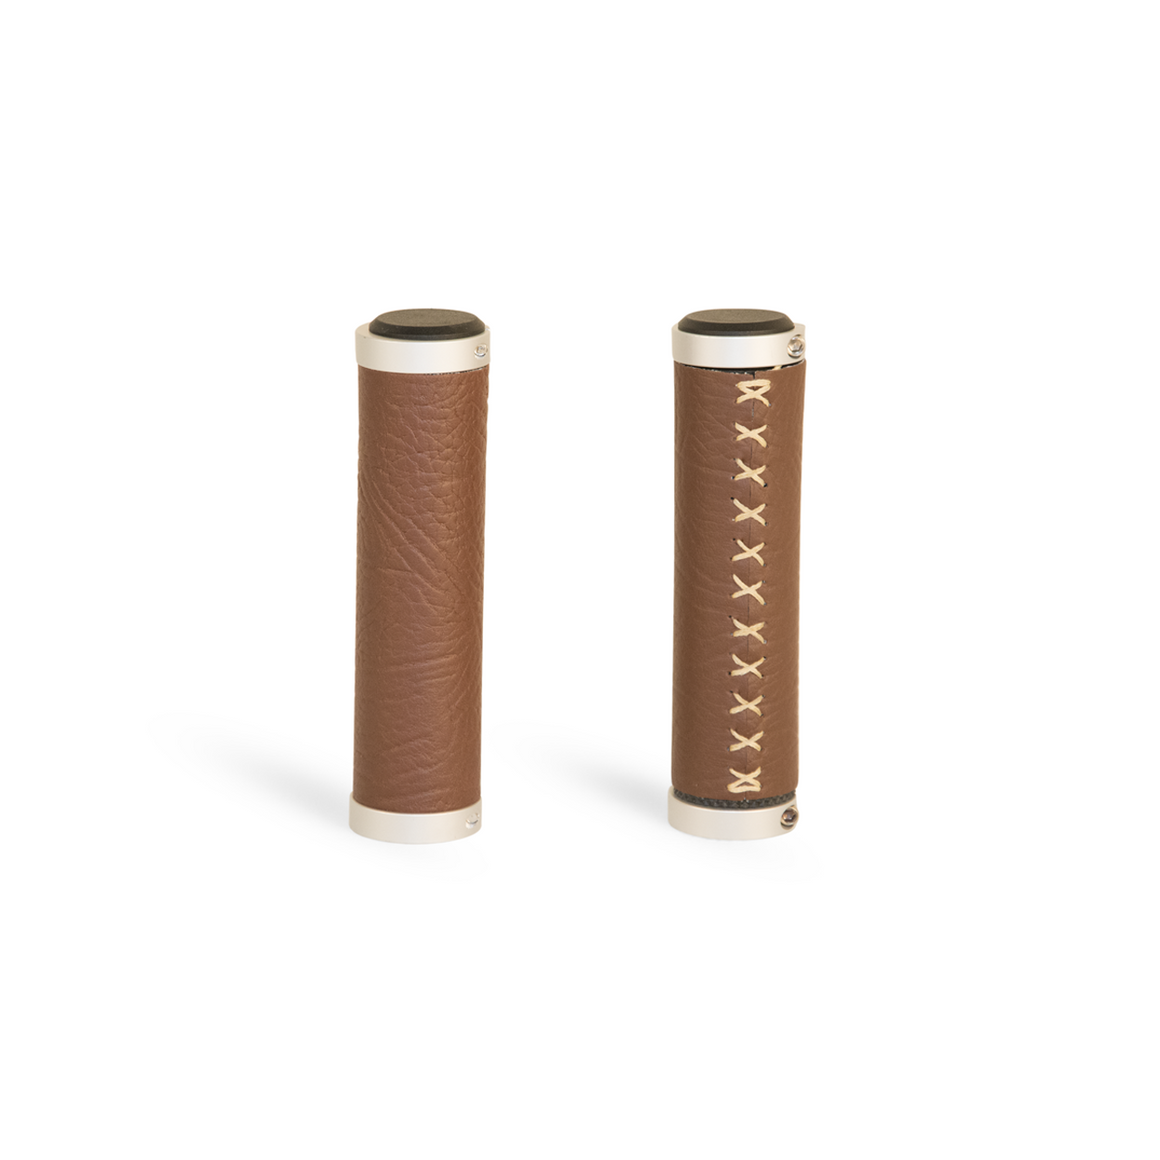 Luxe Walnut Vegan Leather Grips | Brooklyn Bicycle Co.